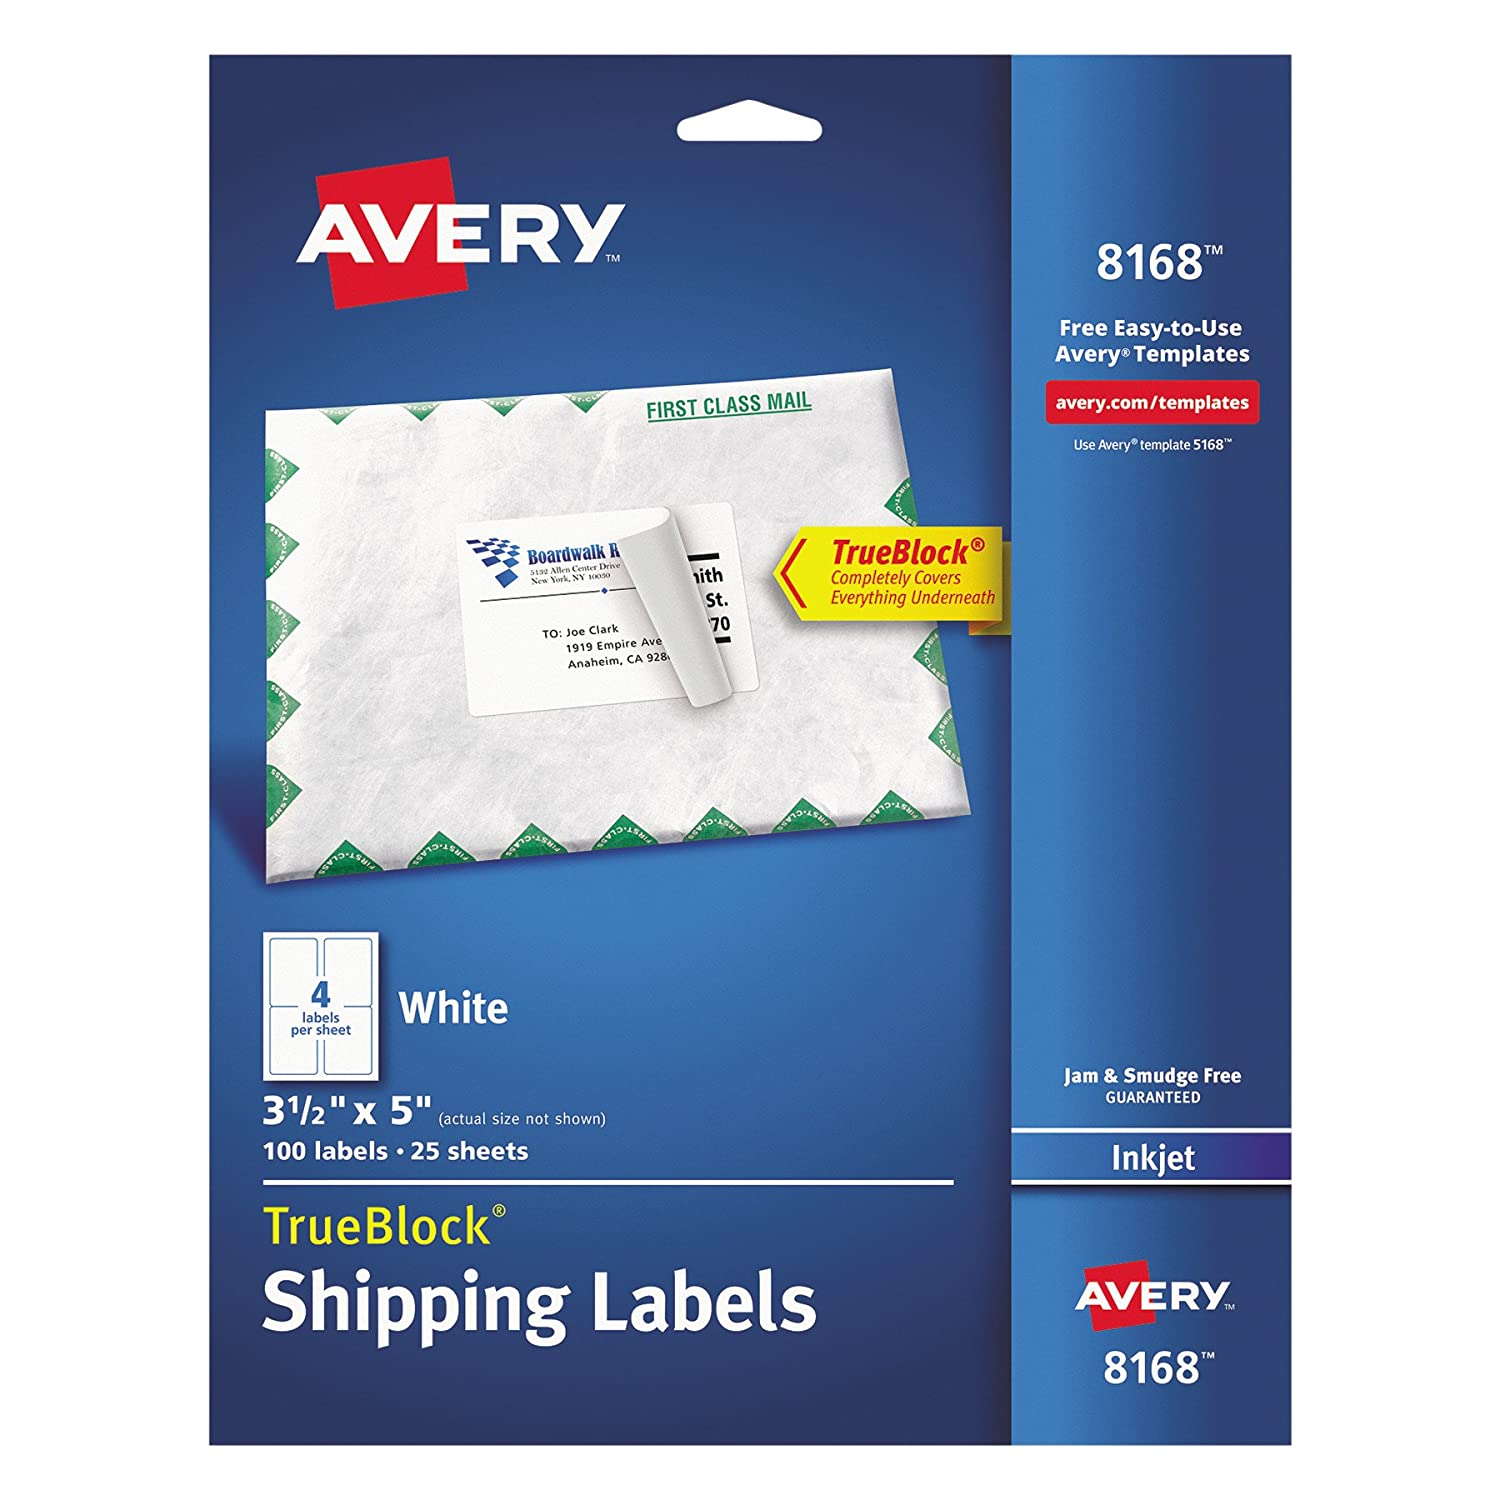 Amazon.com : Avery Shipping Address Labels, Inkjet Printers, 100 ...